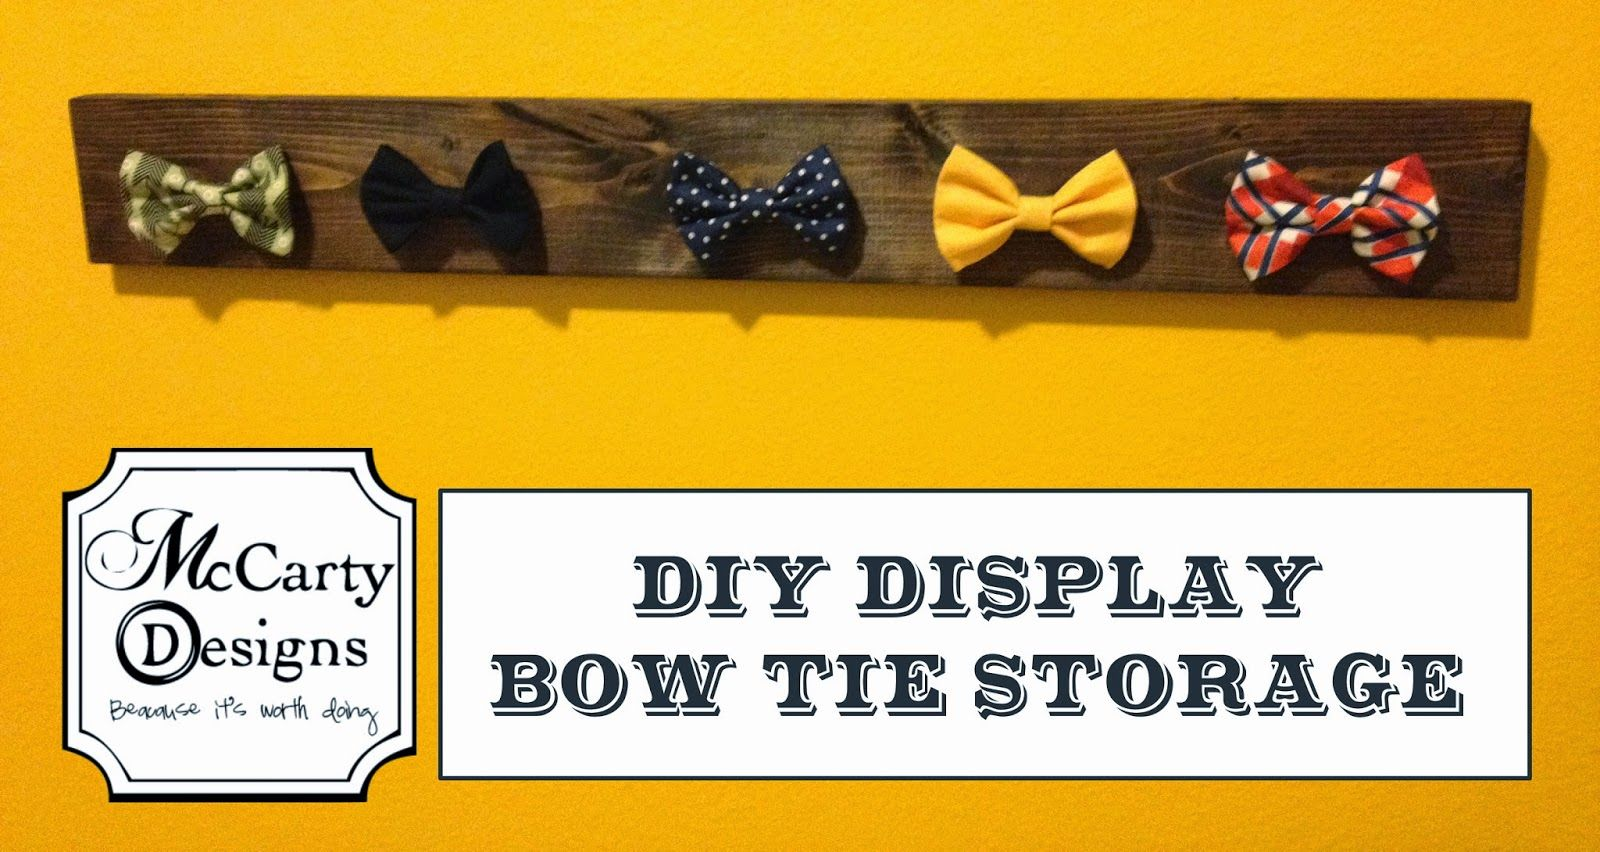 f9b38251a4c8 DIY Display Bow Tie Storage! Make a super easy way to display and use your  child's bow tie collection!